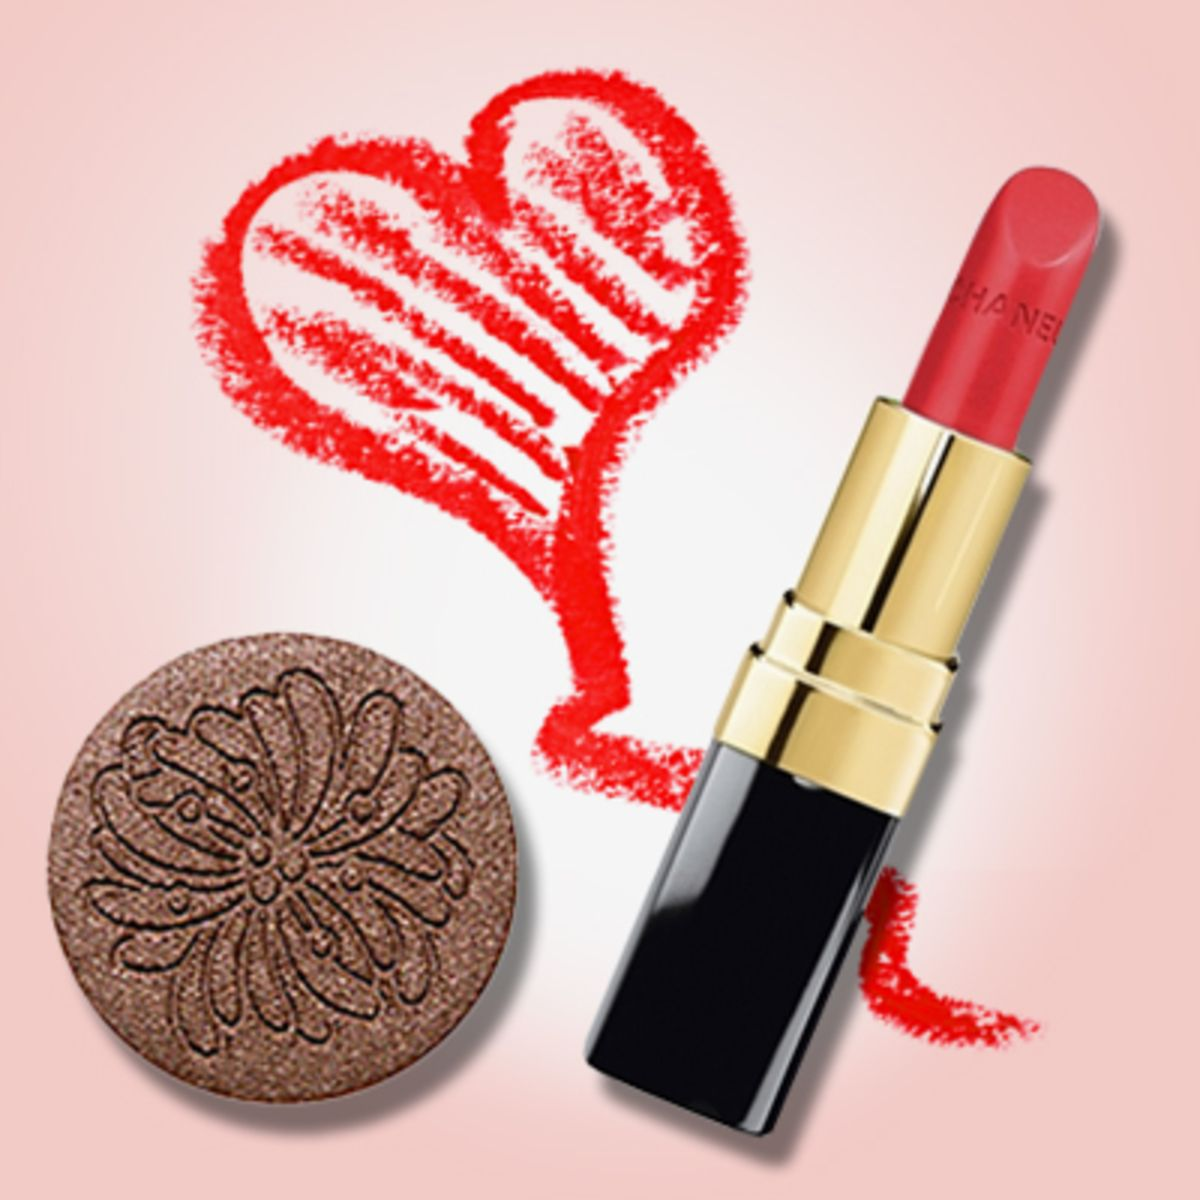 Coupled Up: 12 Lipstick & Eye Shadow Combos that Work     These lip-and-lid love teams look so darn good together. Prepare to fall in love! https://beautymnl.com/magazine/articles/coupled-up-12-lipsticks-eye-shadow-combos-that-work